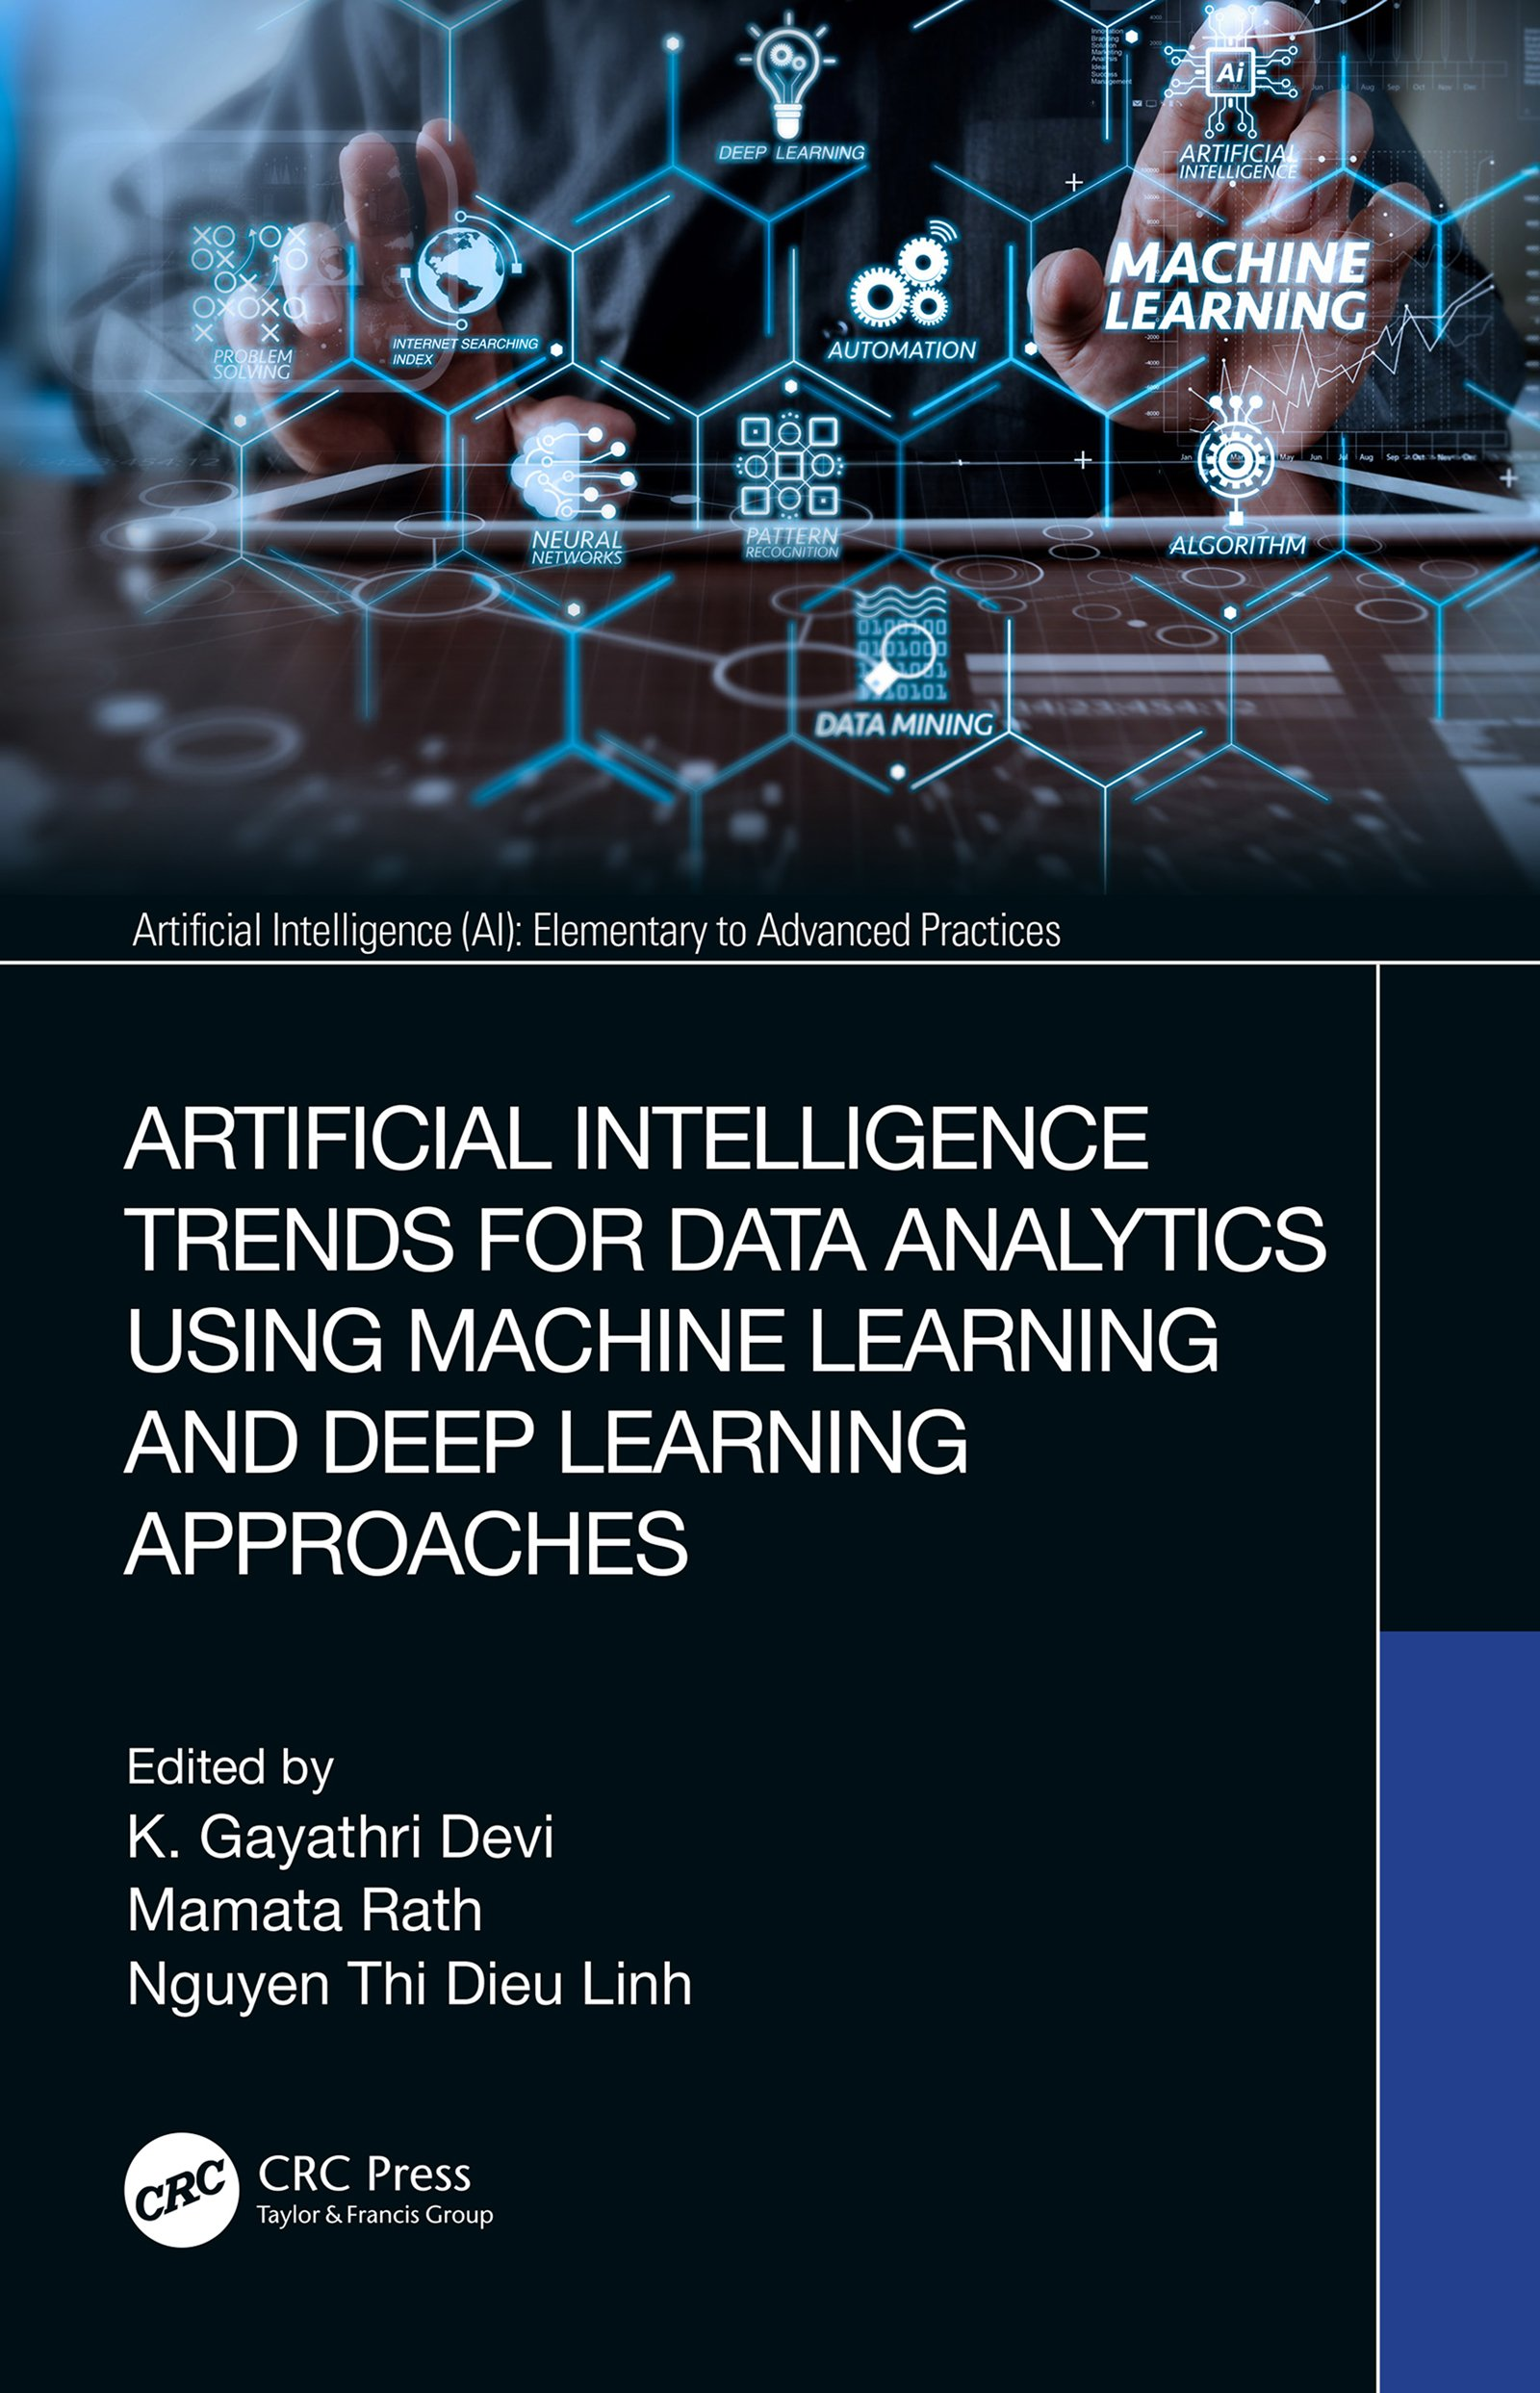 Artificial Intelligence Trends for Data Analytics Using Machine Learning and Deep Learning Approaches